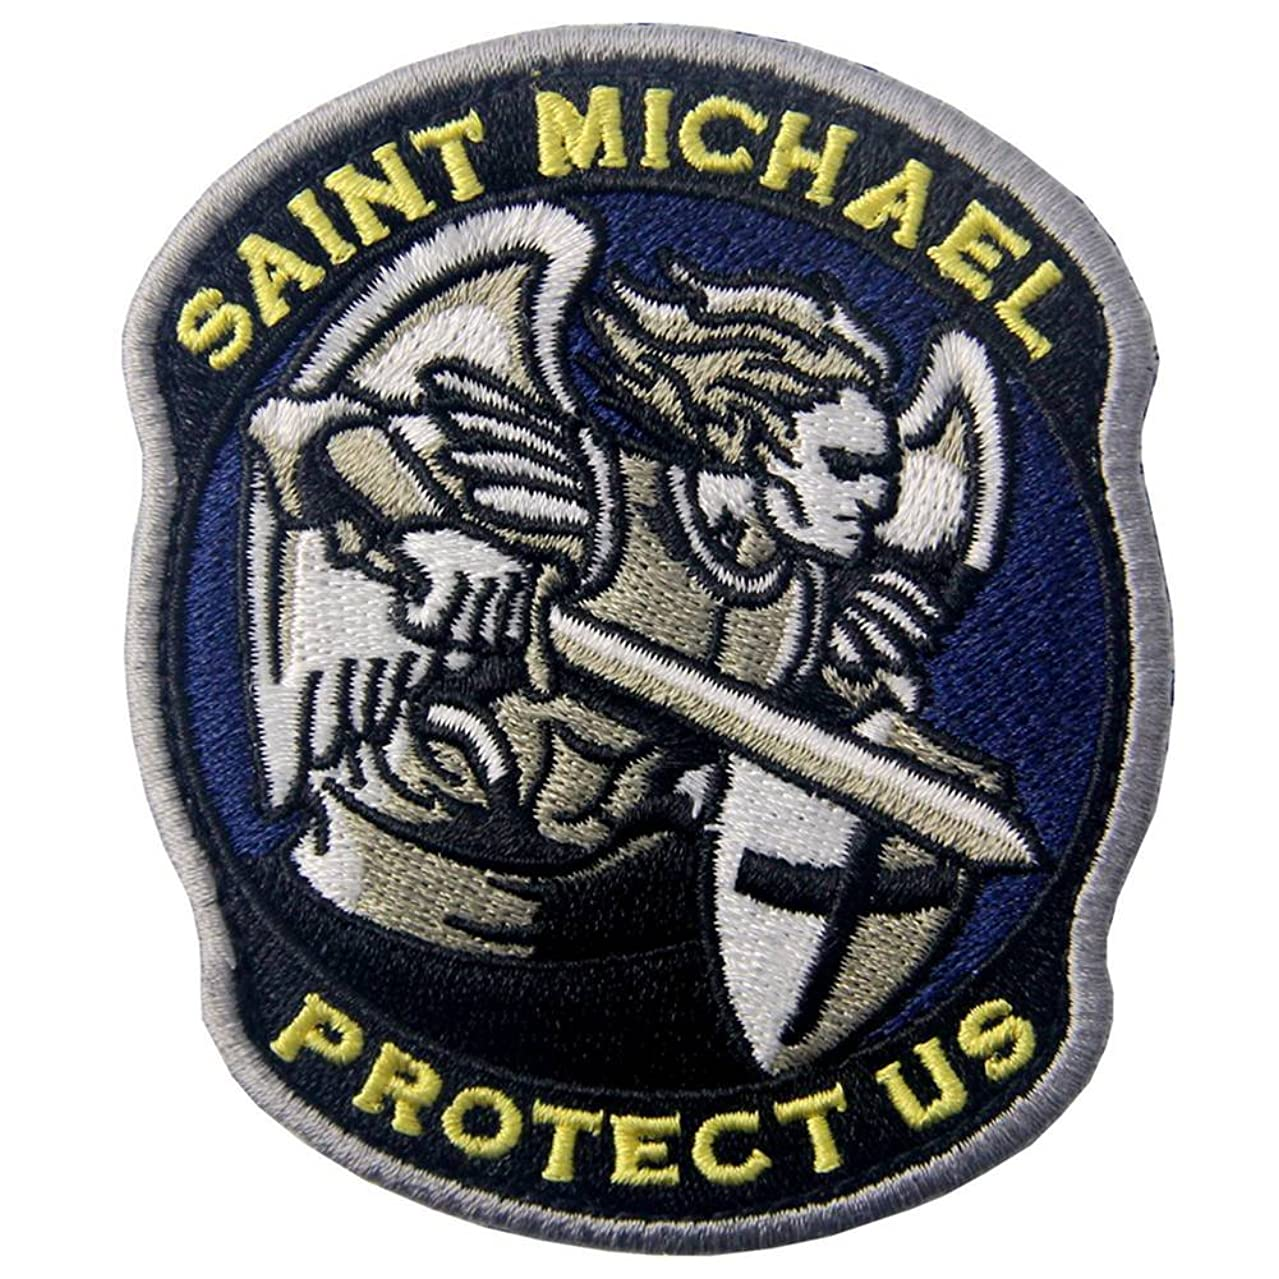 Rocking Planet Saint Michael Protect Us Embroidered Modern Military ACU Tactical Emblem Army Morale Hook & Loop Patch